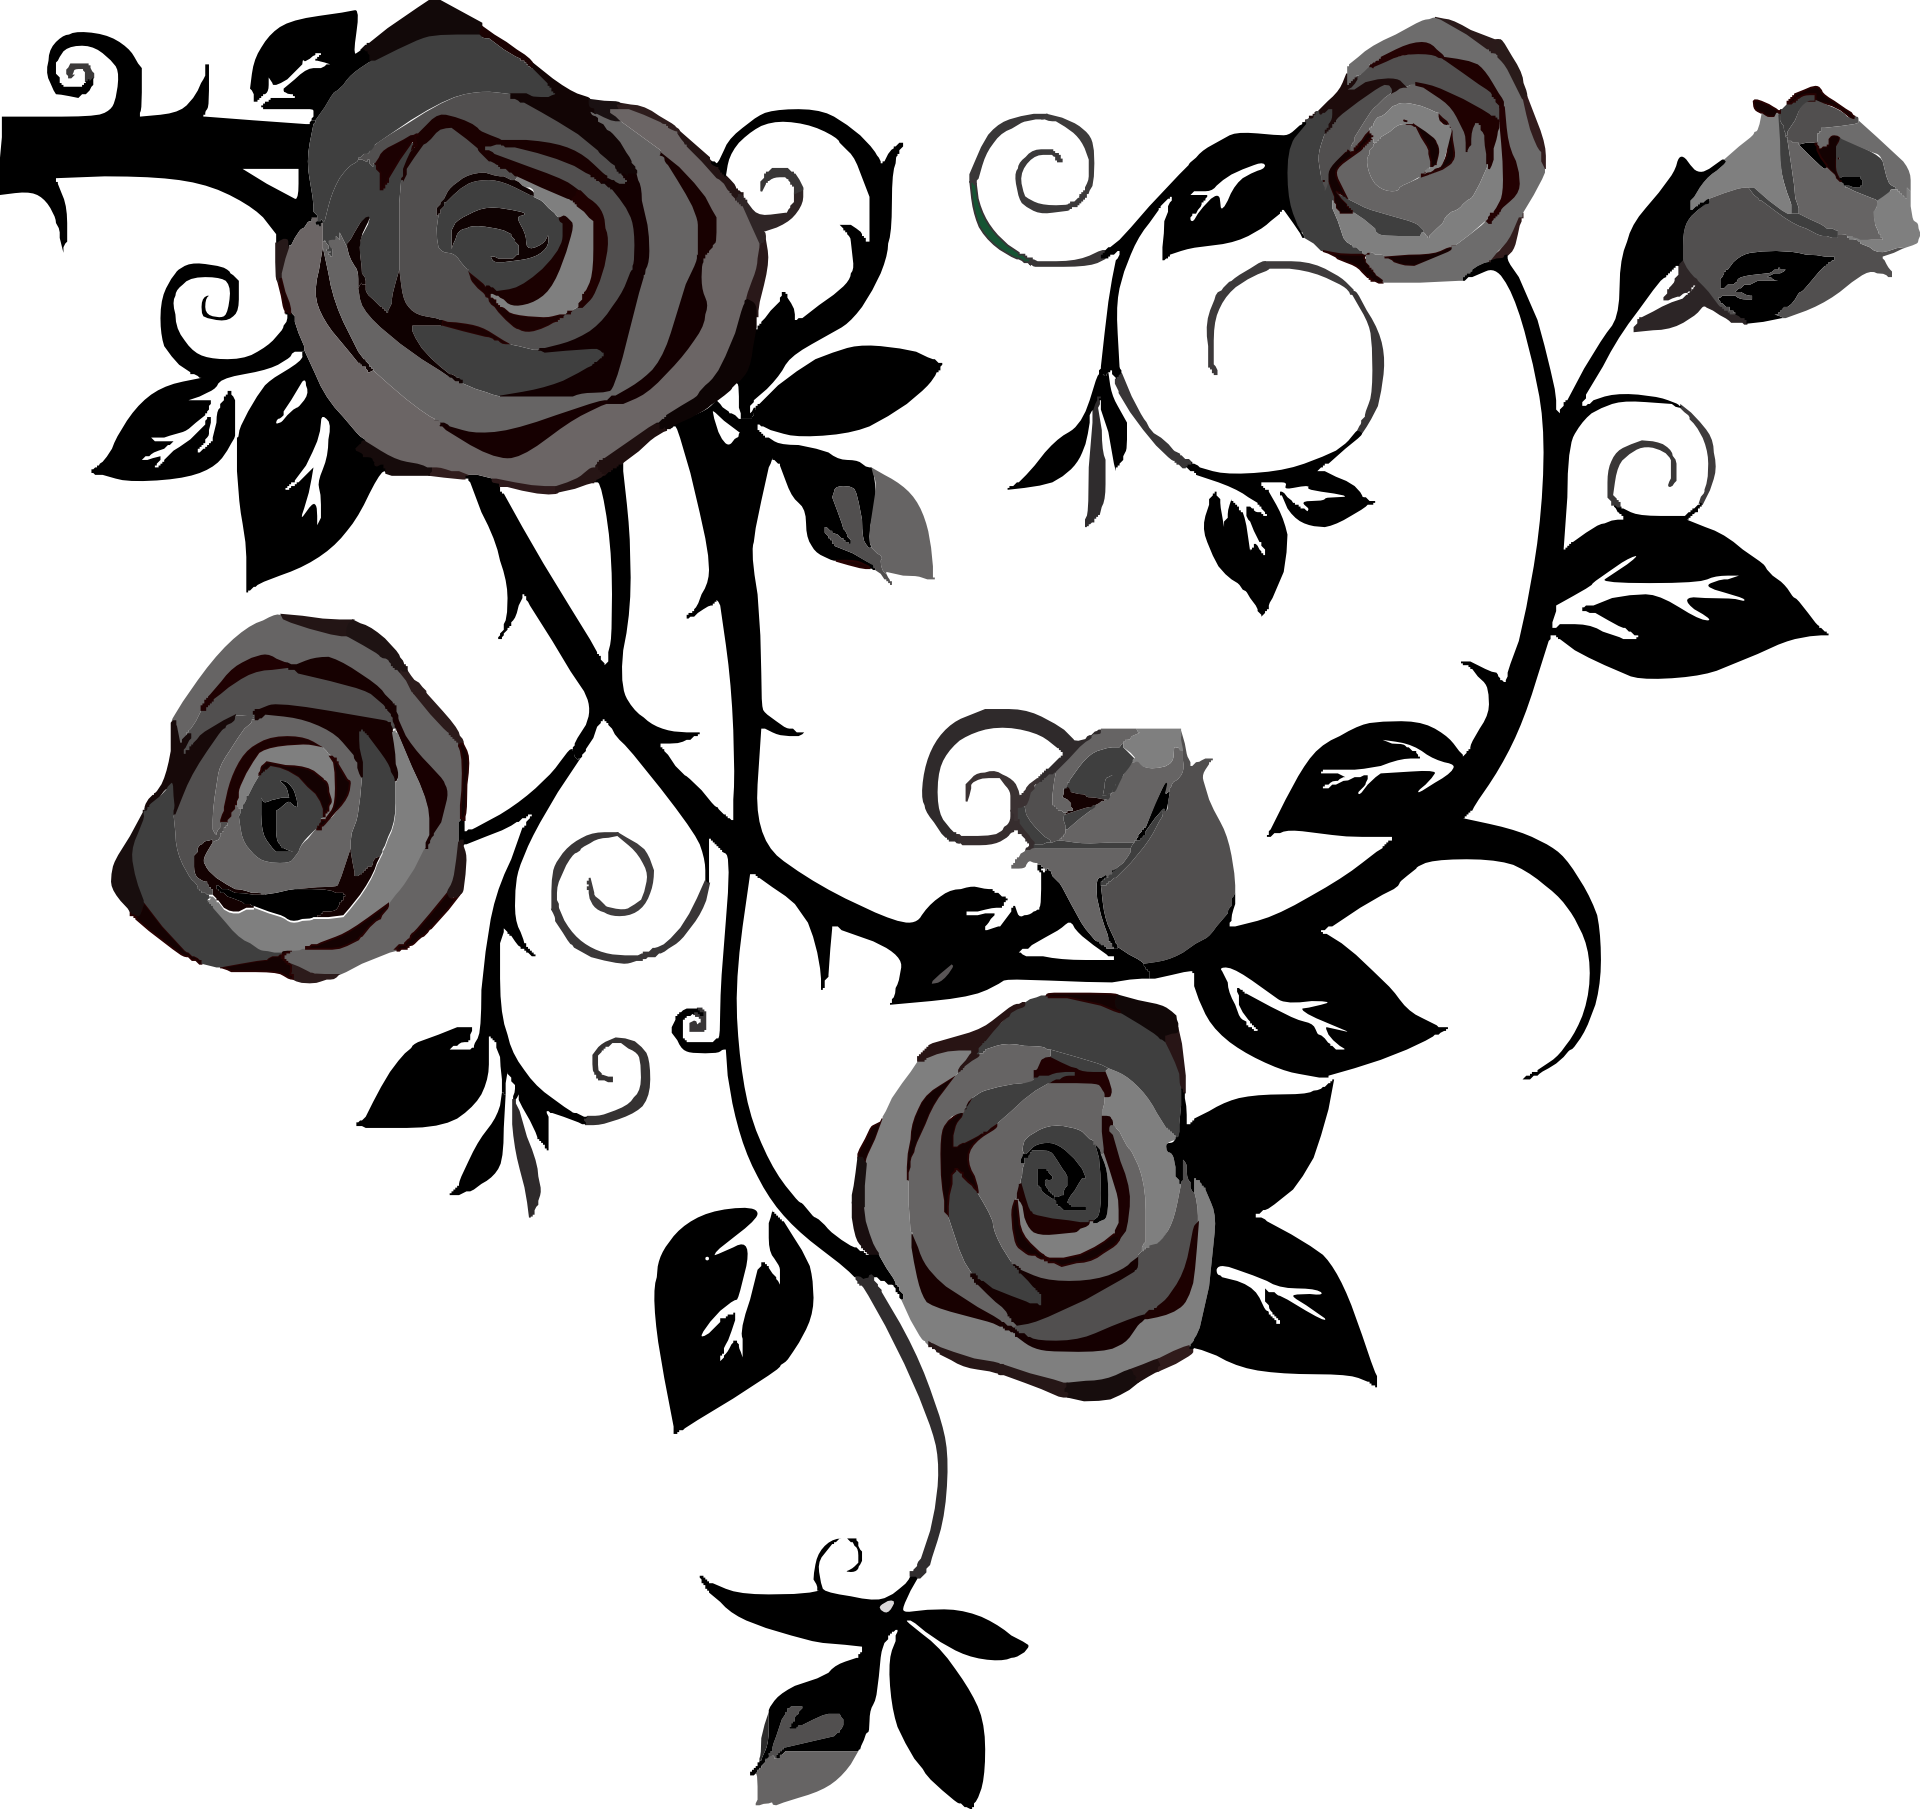 Rose with thorns png. Vine drawing spines and